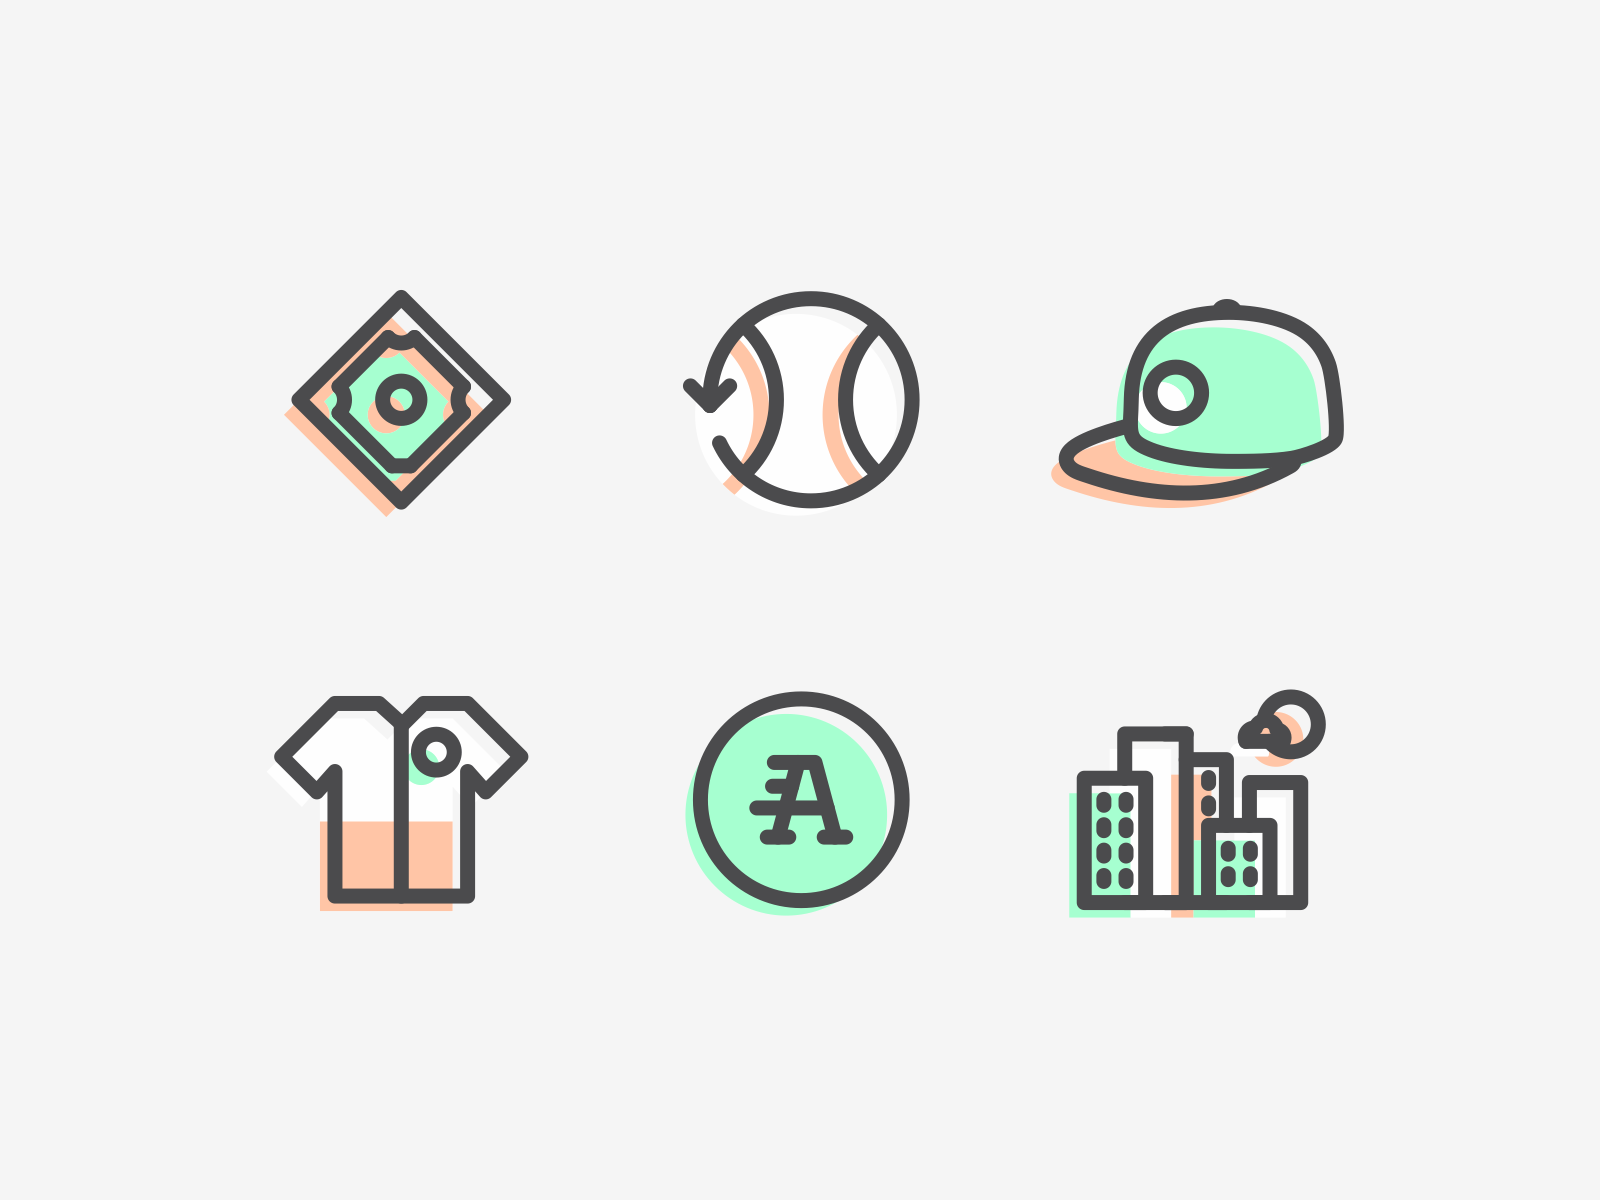 Baseball iconography color